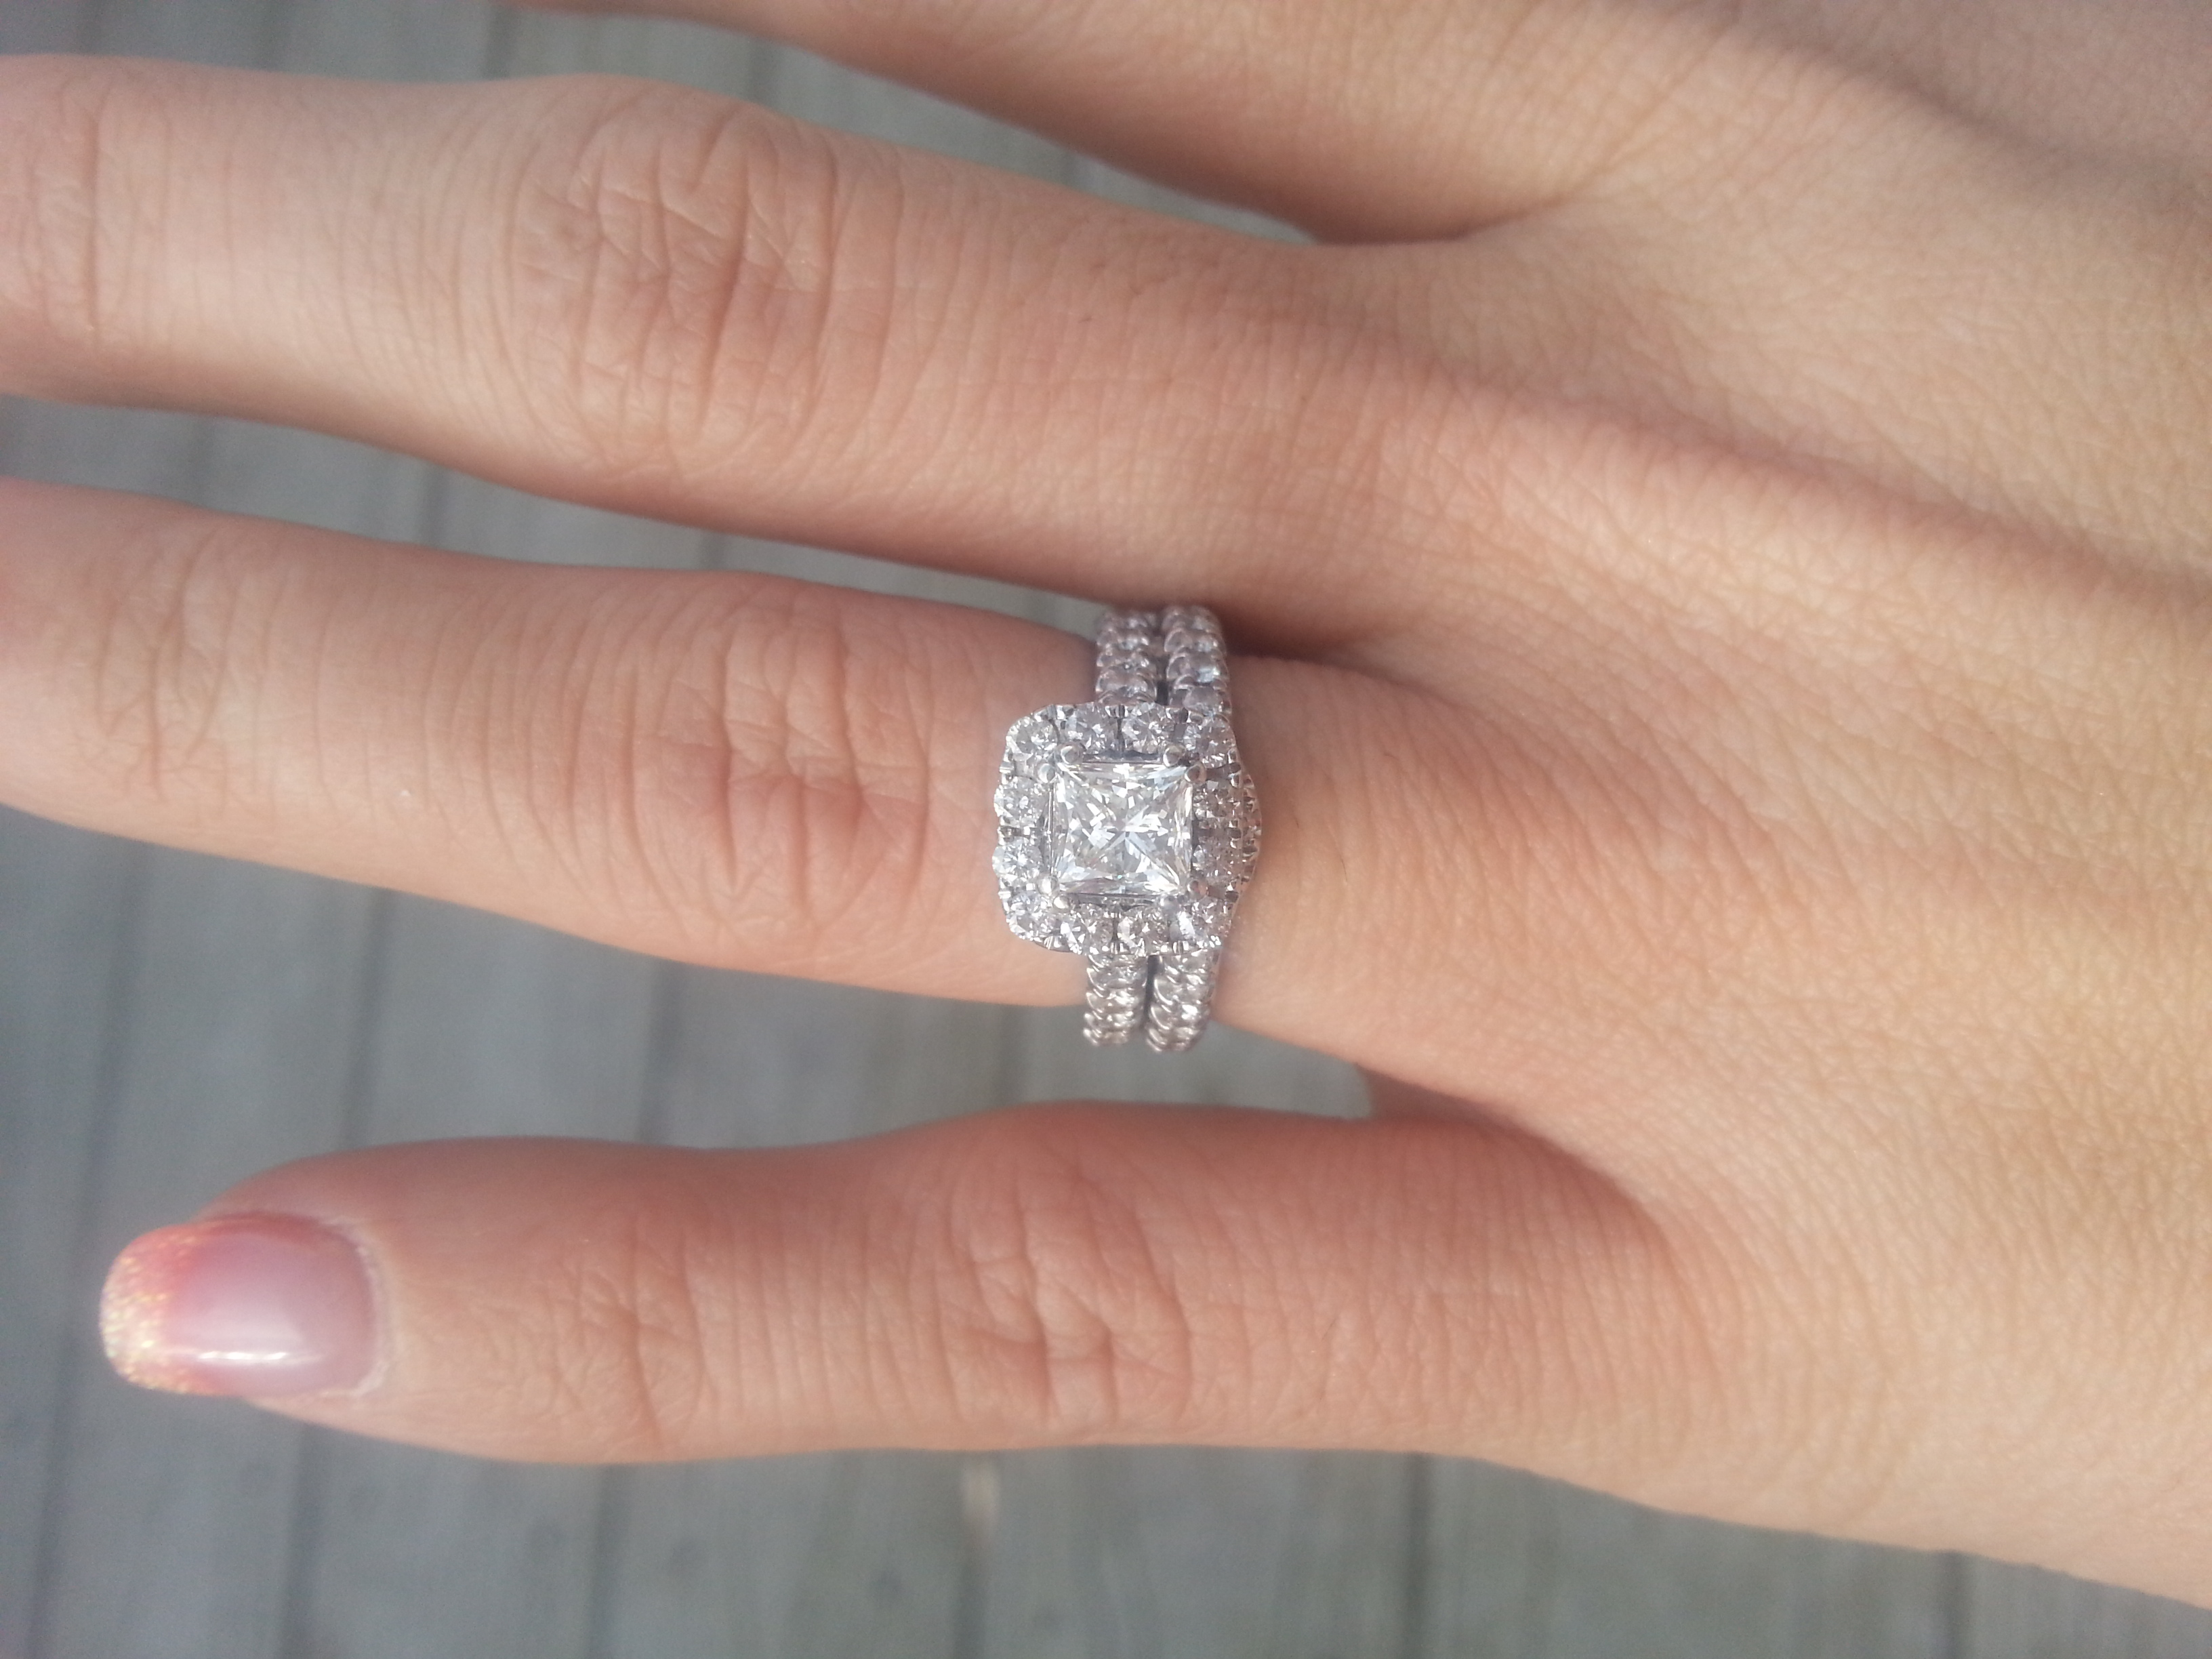 neil lane engagement rings 2 neil lane wedding rings One of my wedding sets is Neil Lane bridal at Kays Honestly you can find a set with better quality diamonds for a lower price if you buy online